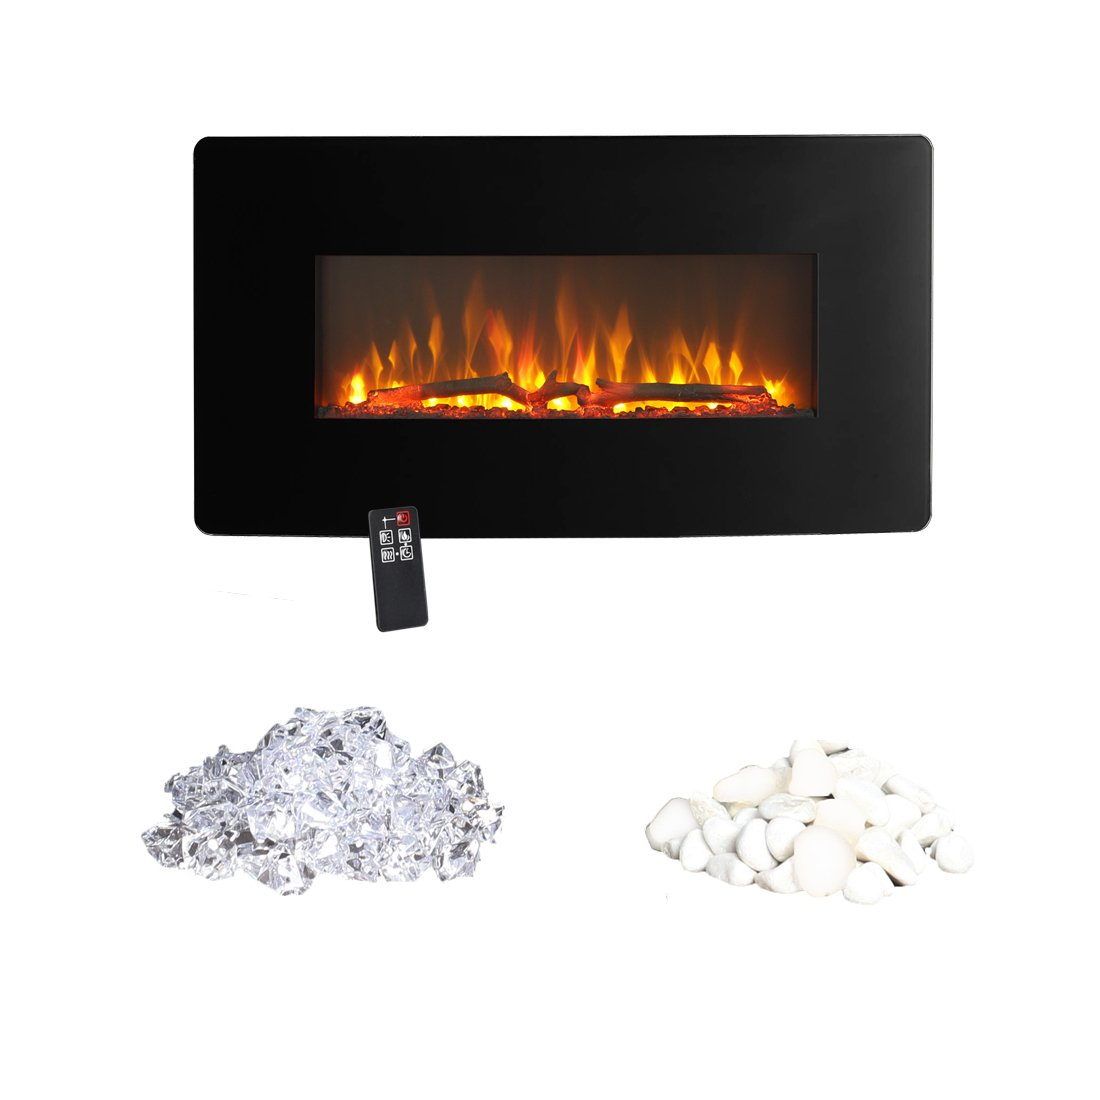 Innoflame E35c Wall Hanging Electric Fireplace Heater with Remote Control, 36 Inch Wide,1400W (Black) by Innoflame